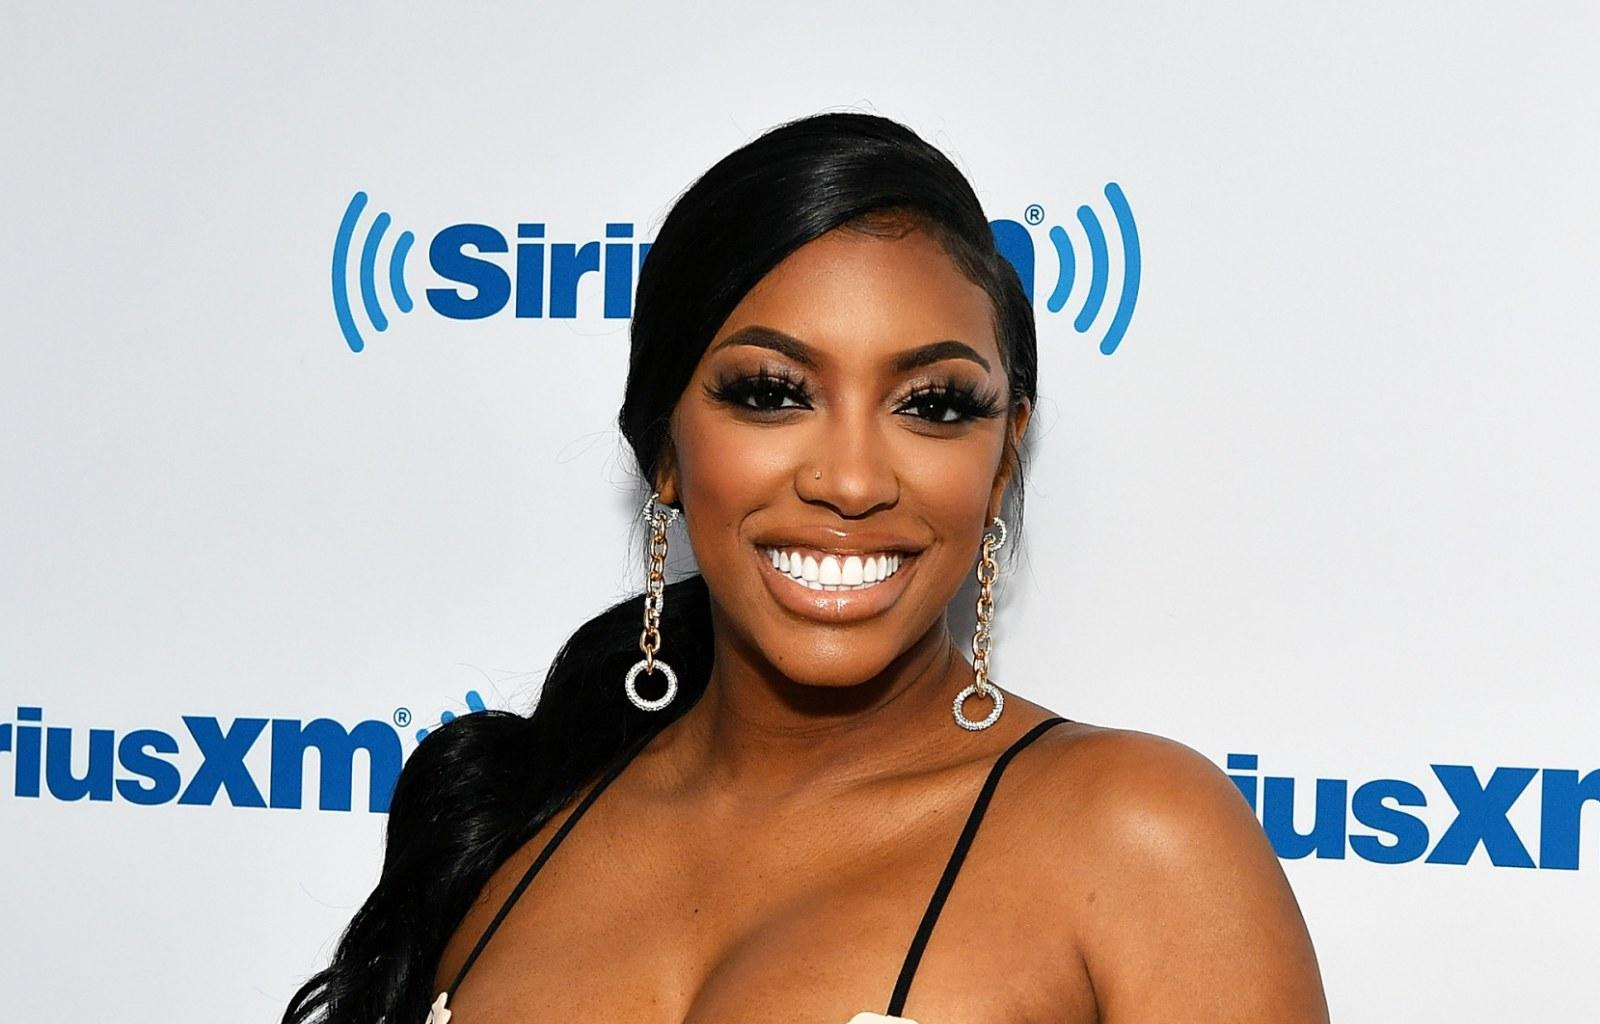 Porsha Williams' Fans Are Bashing Her Following Her Latest Post